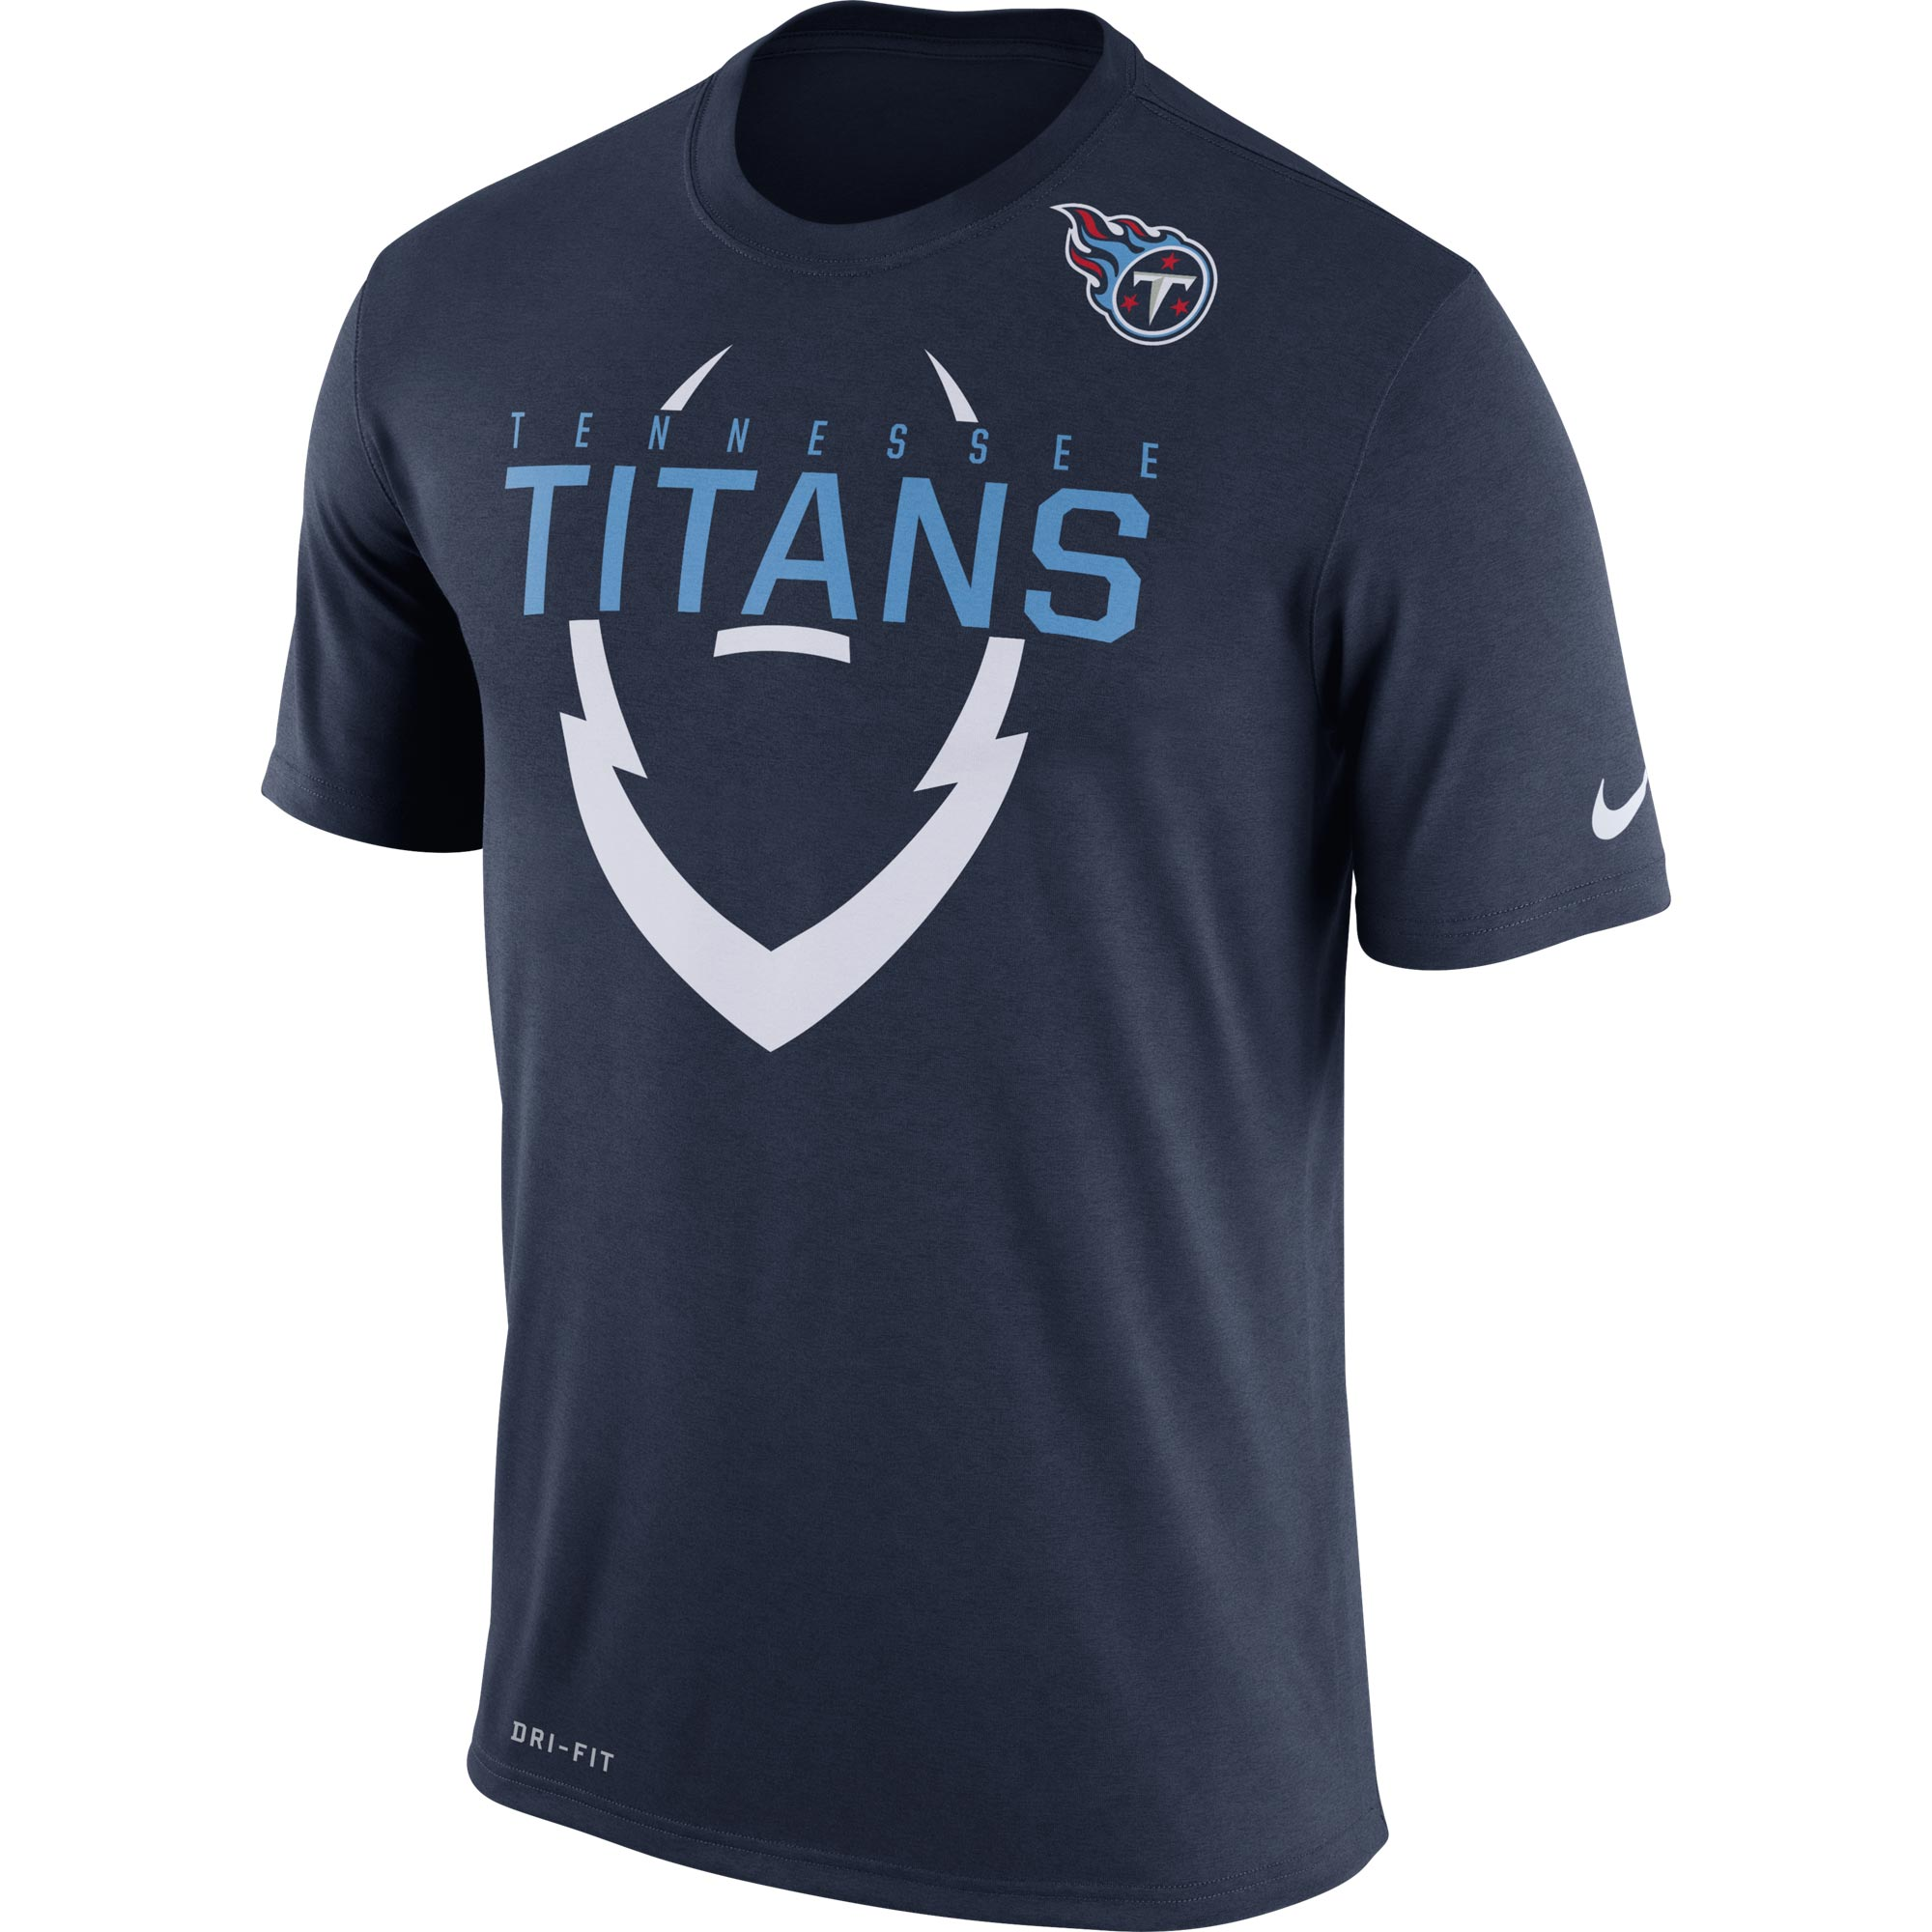 Tennessee Titans Nike Legend Icon Dri-FIT T-Shirt - Navy - S